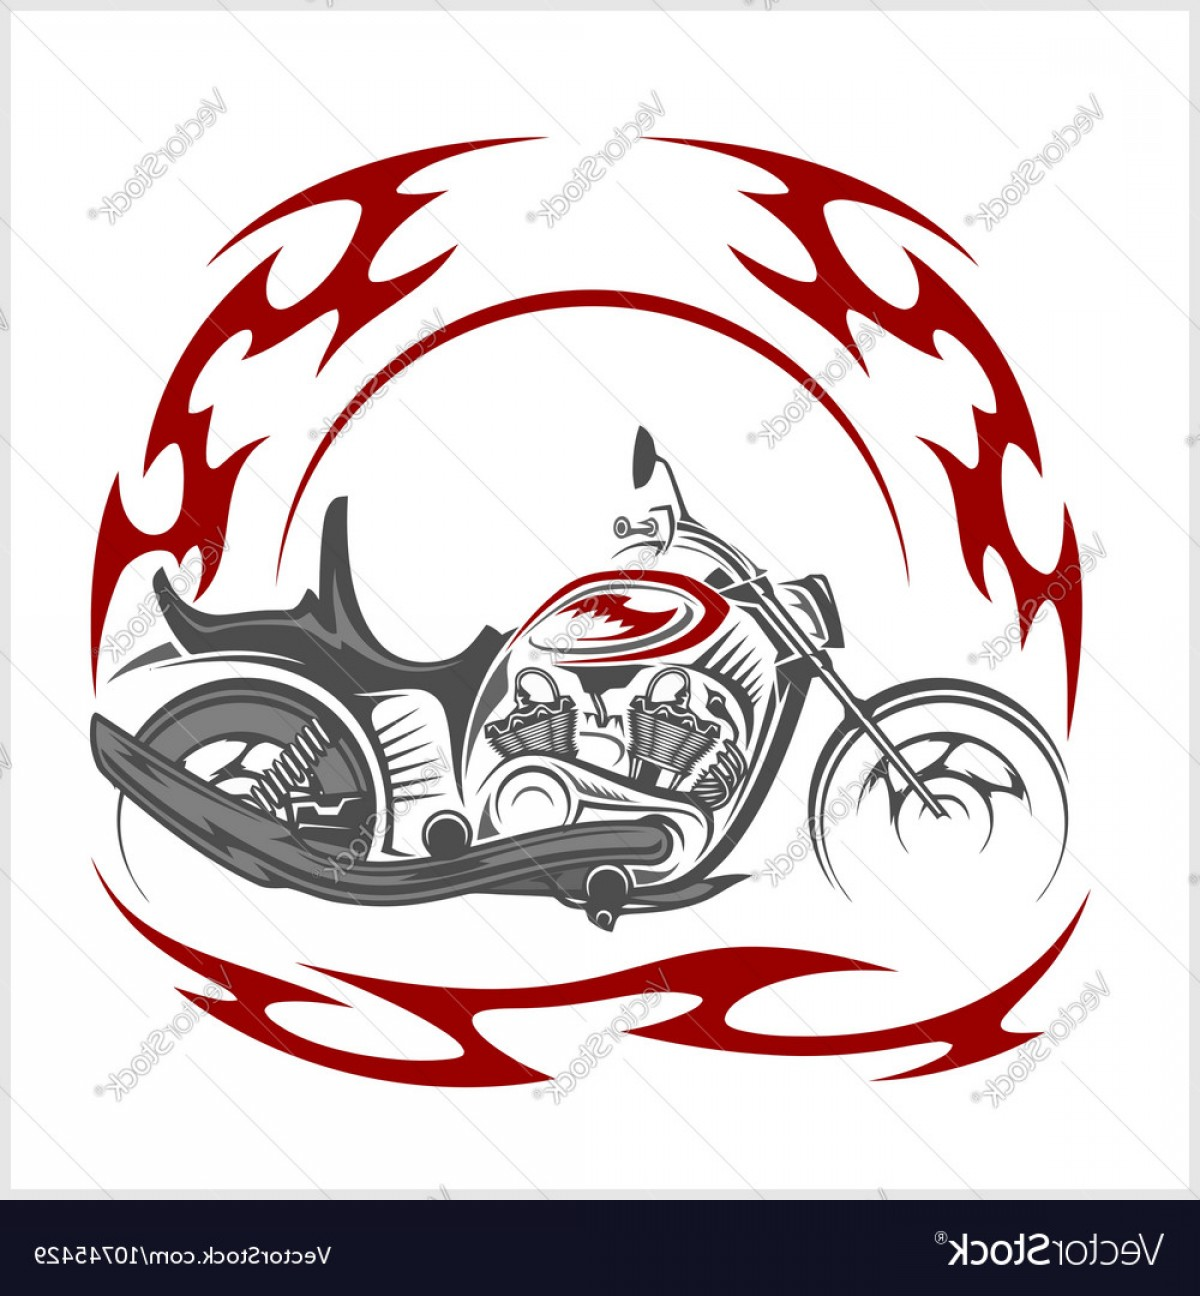 Tribal Flames Vector Car: Flaming Bike Retro Chopper And Tribal Flame Vector